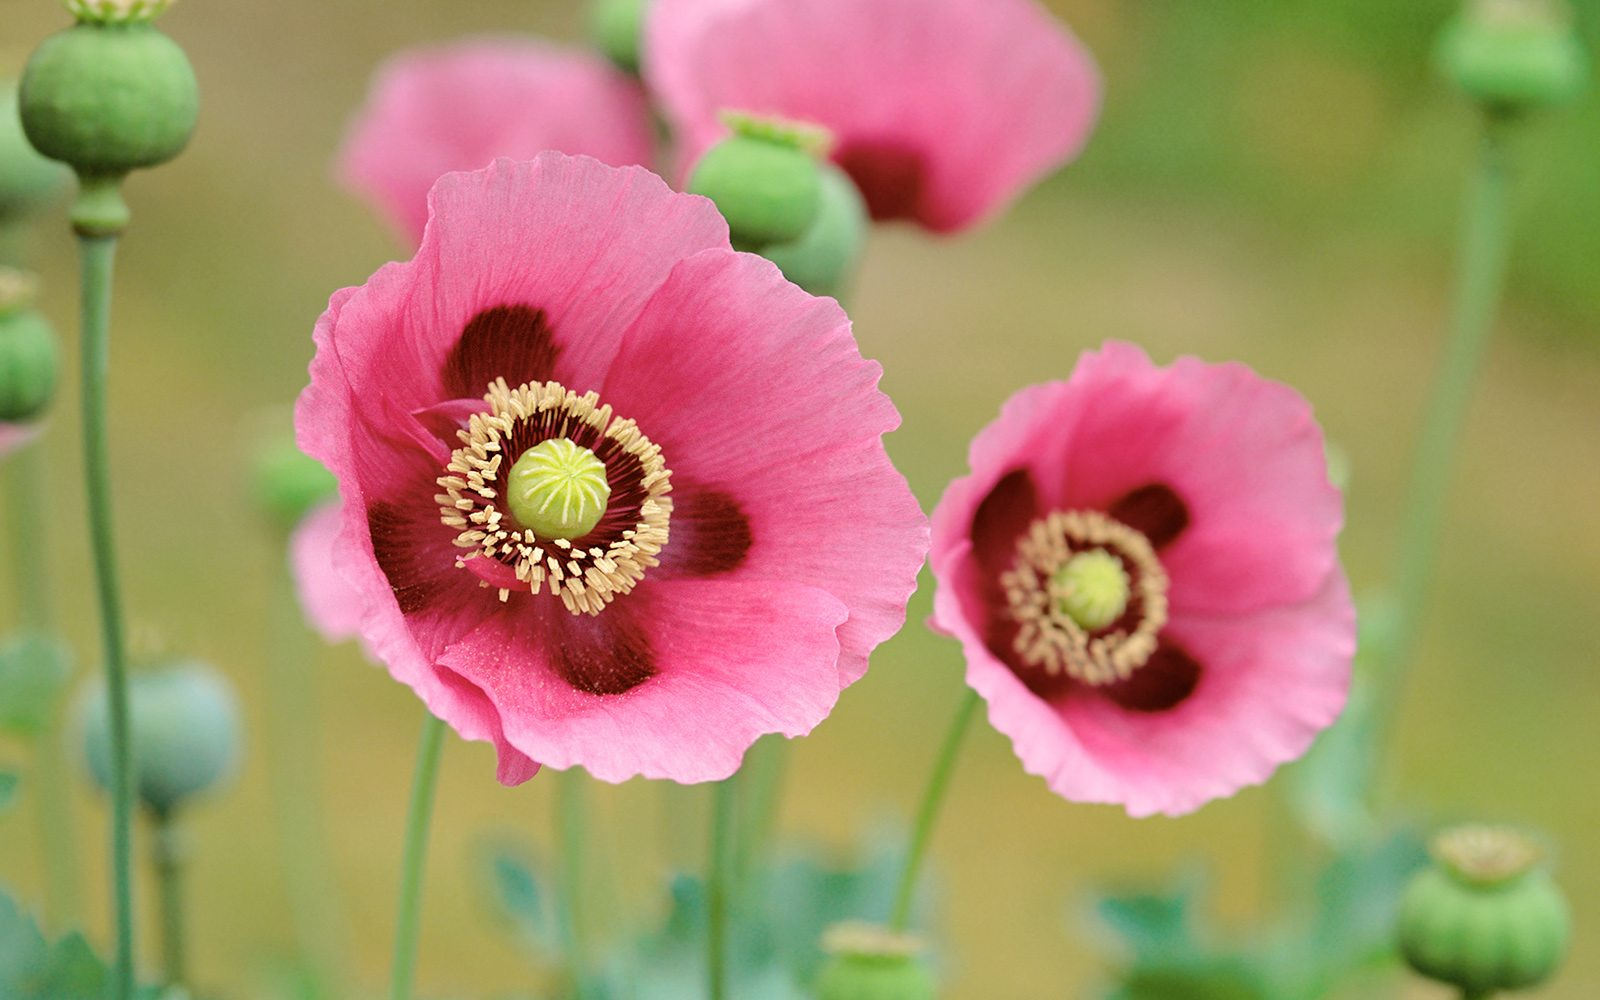 4160975-poppies-flowers